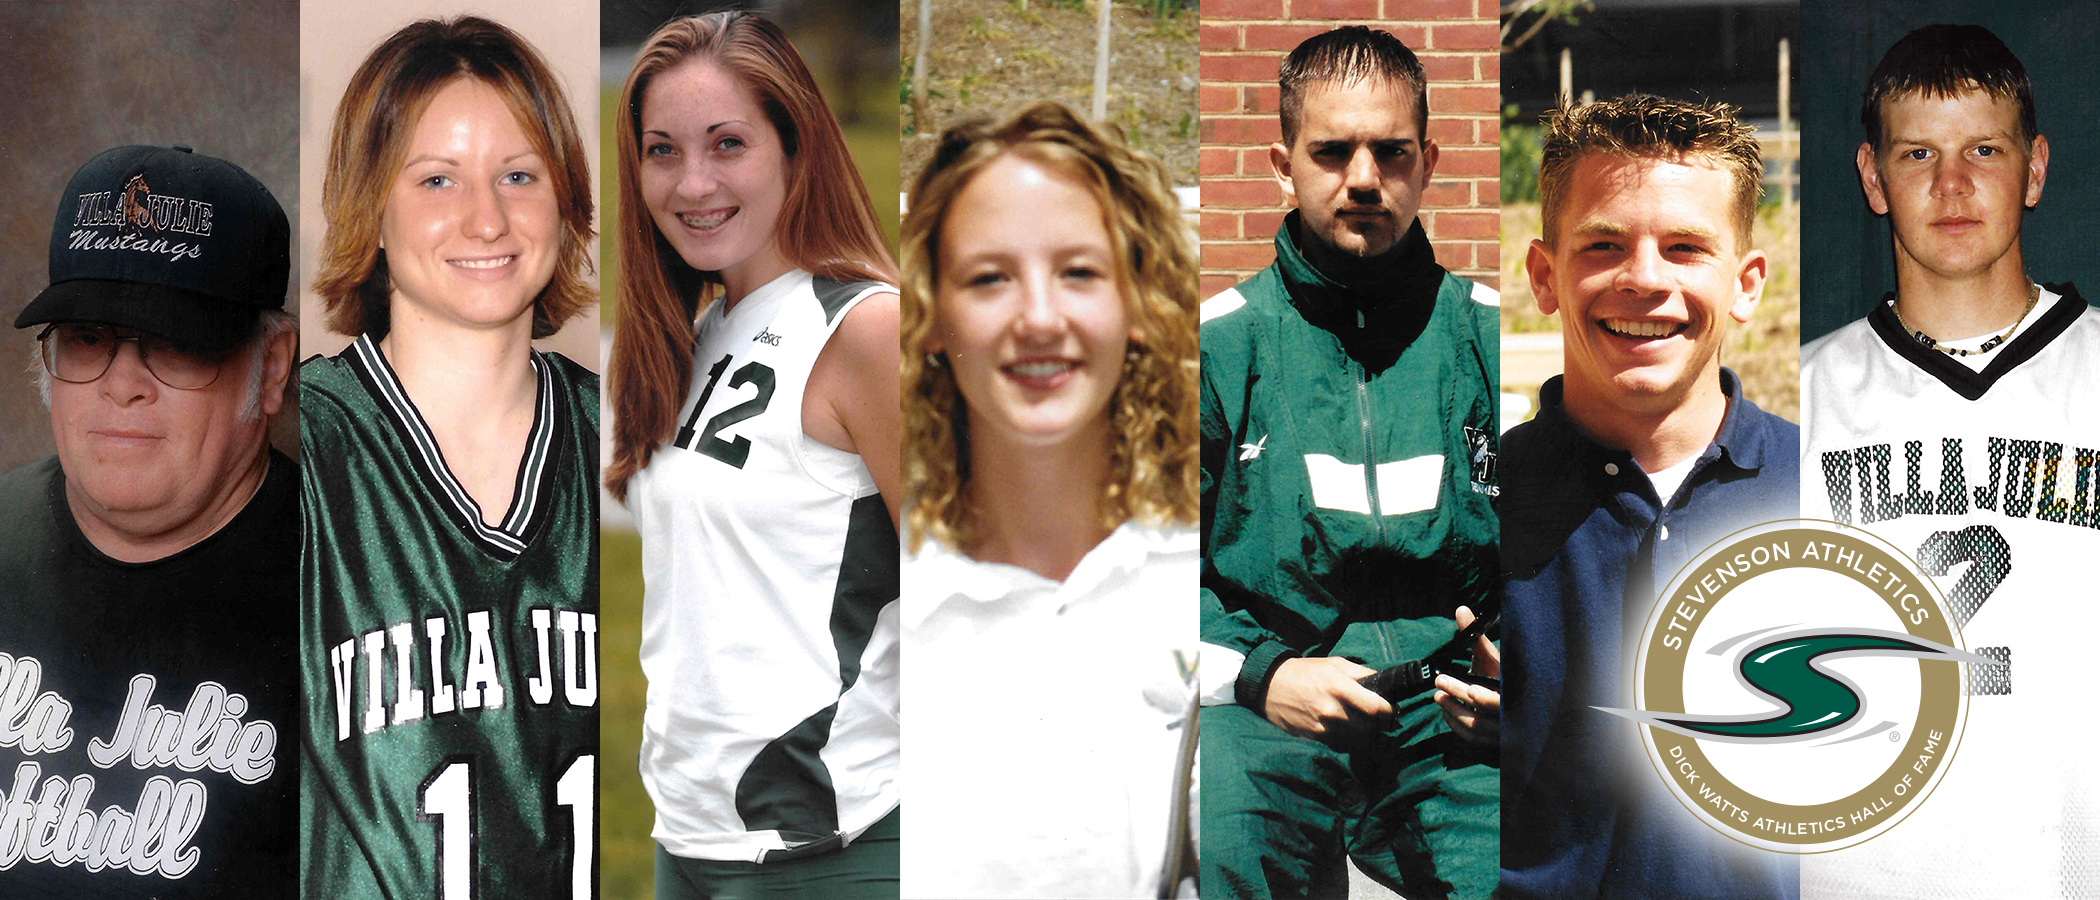 2017 Dick Watts Stevenson University Athletics Hall of Fame Induction Class Announced